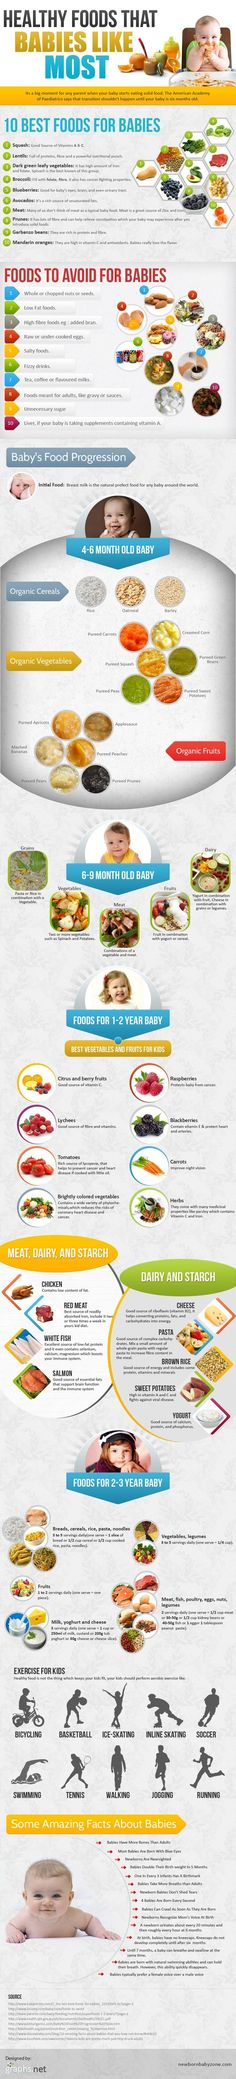 Healthy Foods That Babies Like Most (Infographic) : Newborn Baby Zone